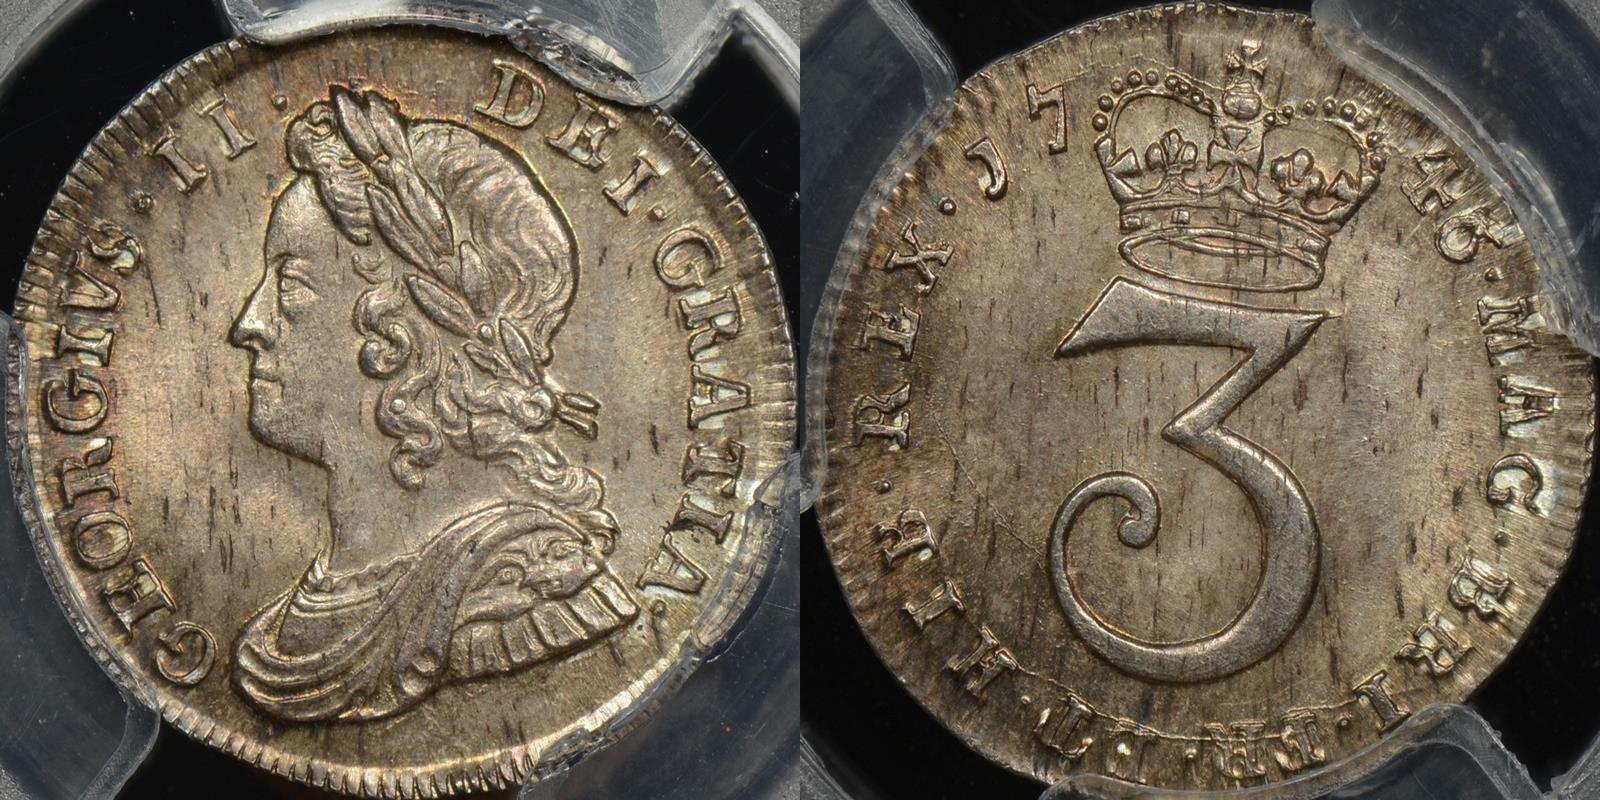 Great britain 1746 3 threeence 3d km 569 PCGS MS65 GEM Uncirculated